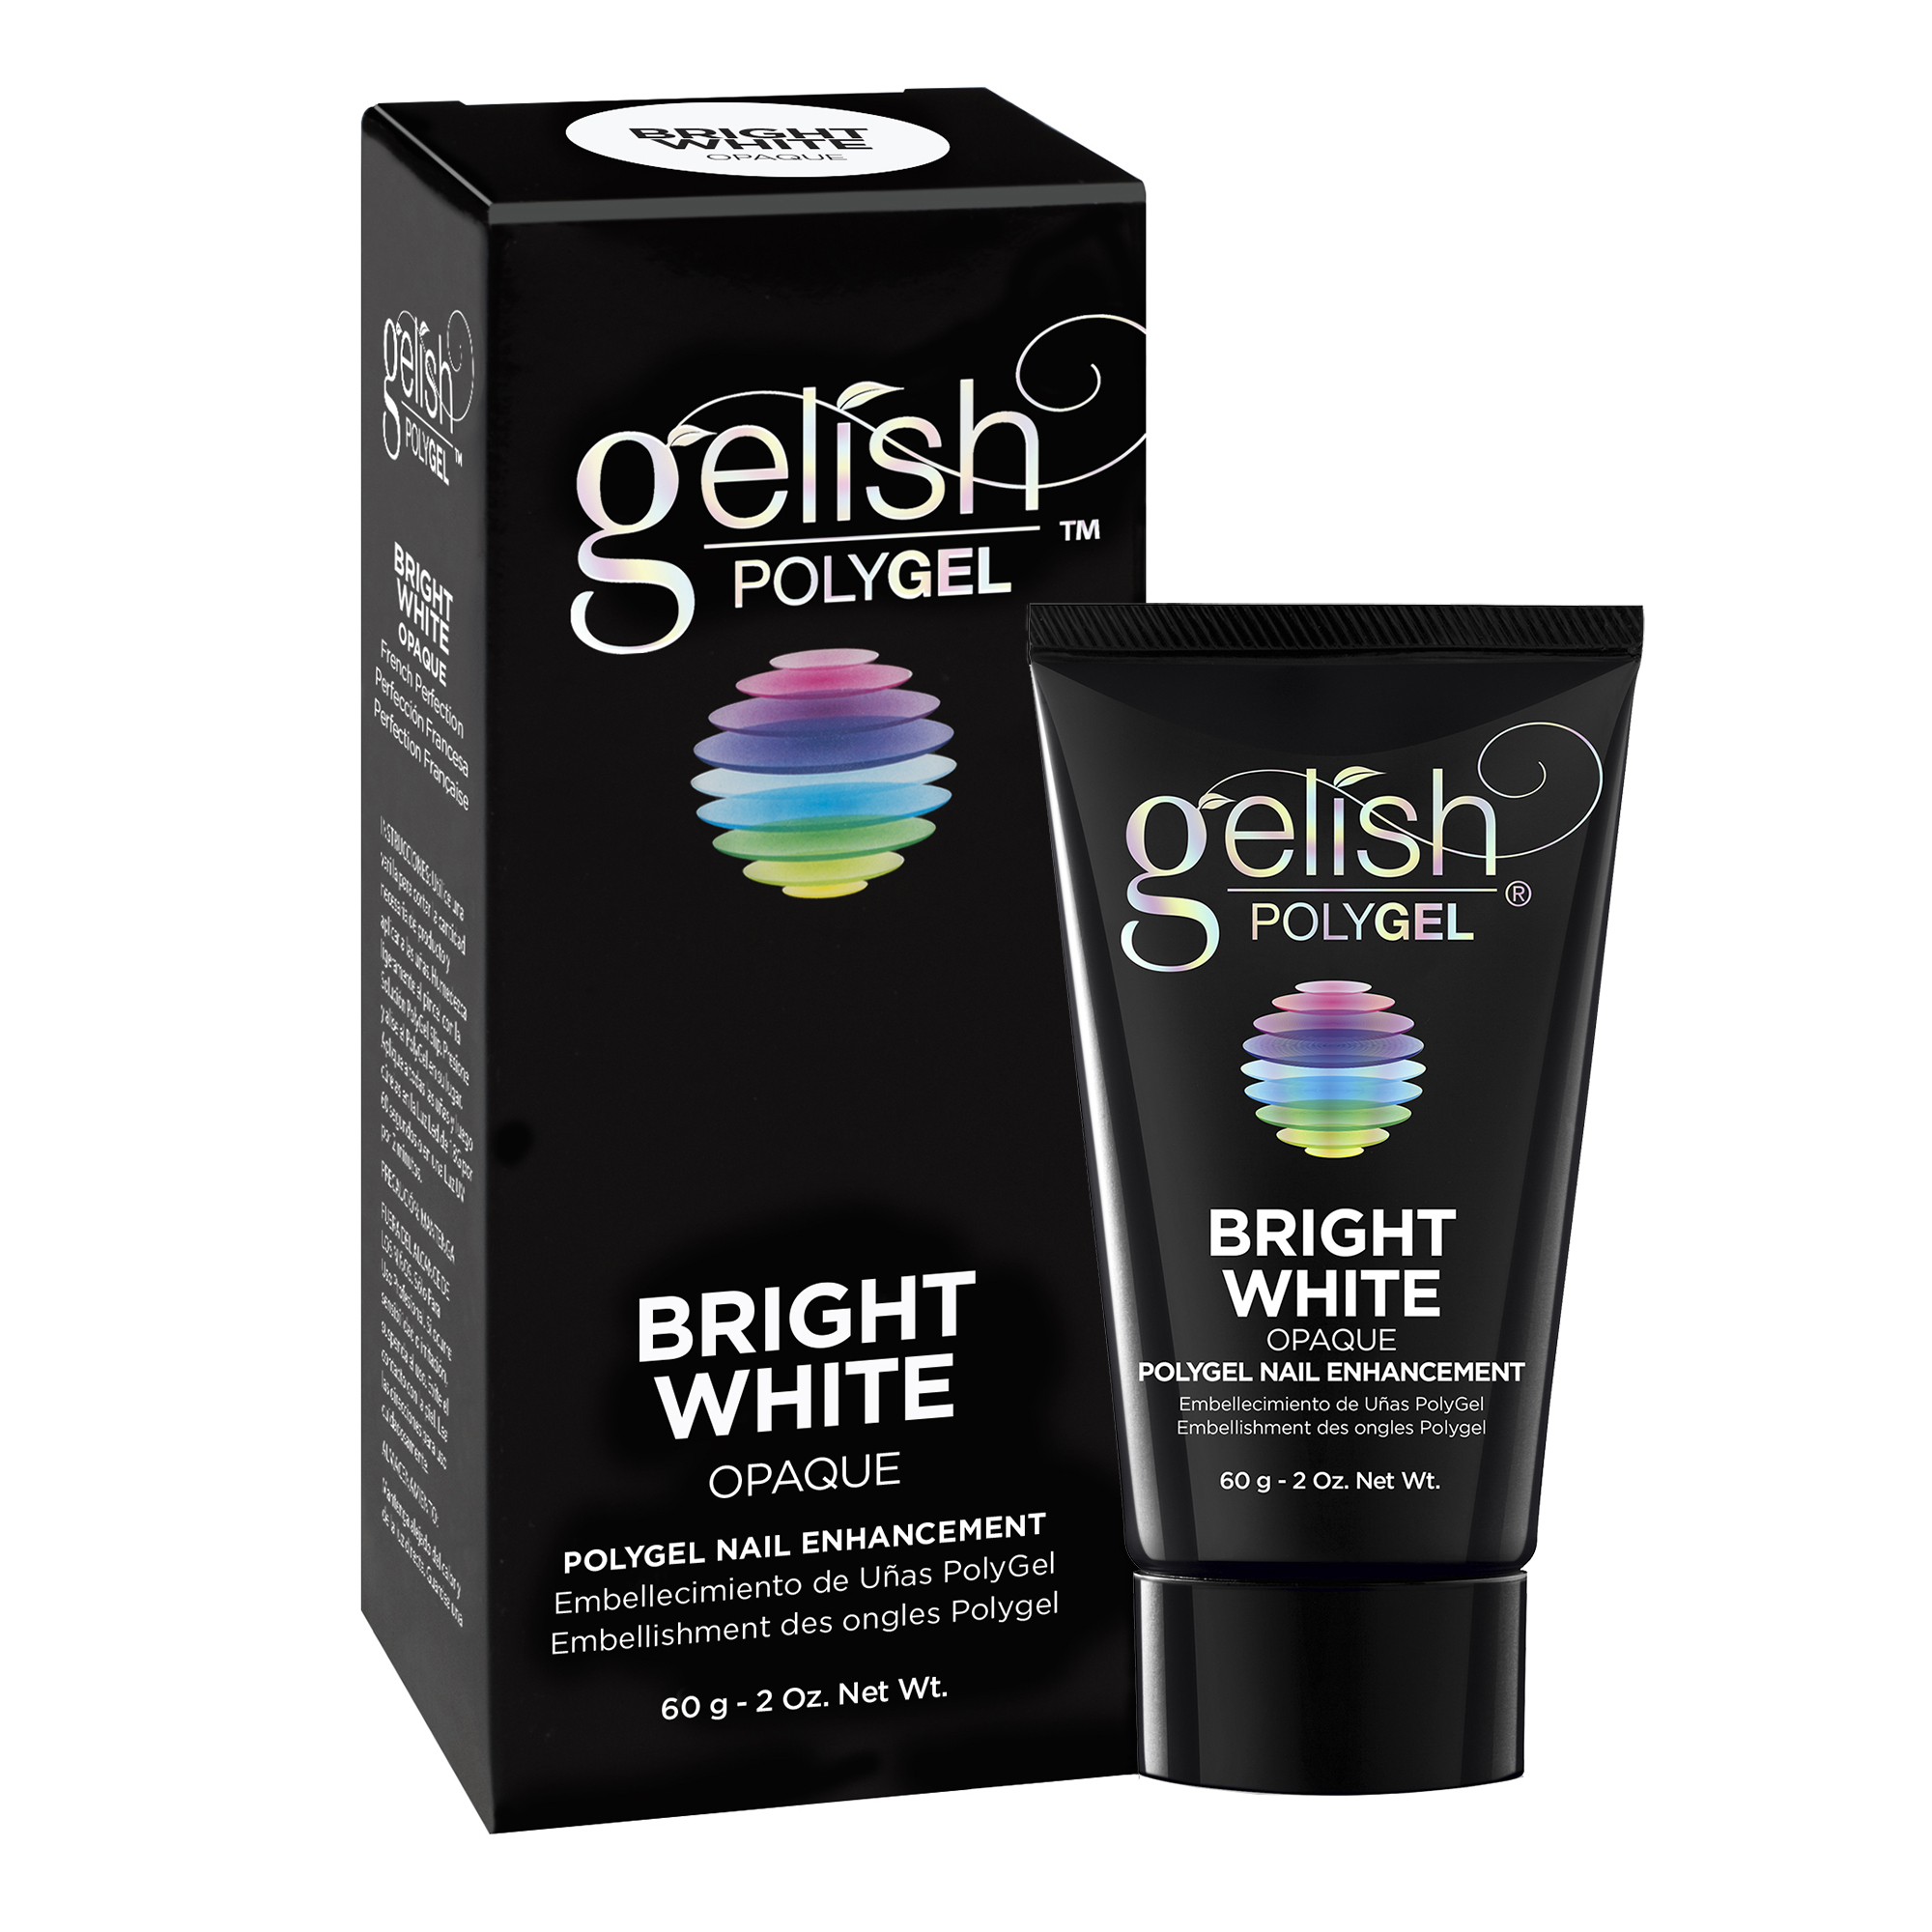 Gelish PolyGel Professional Nail Enhancement Bright White Opaque Shade, 2 Ounces